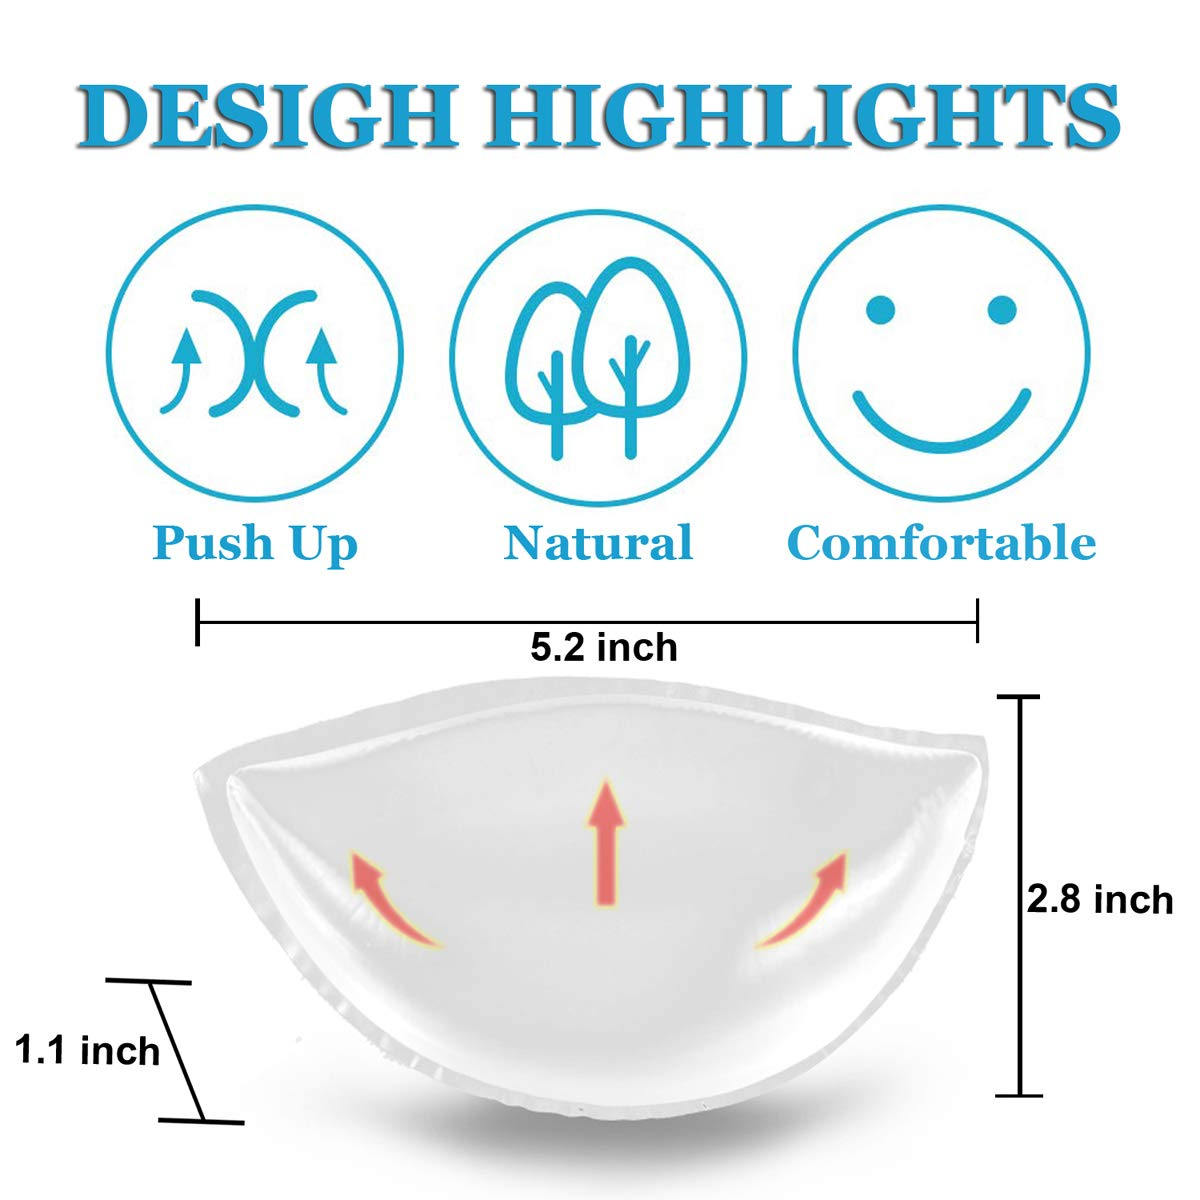 Silicone Bra Inserts Breast Enhancers Small Chest Push-up Bra Pads for Wedding Swimsuits and Bikini